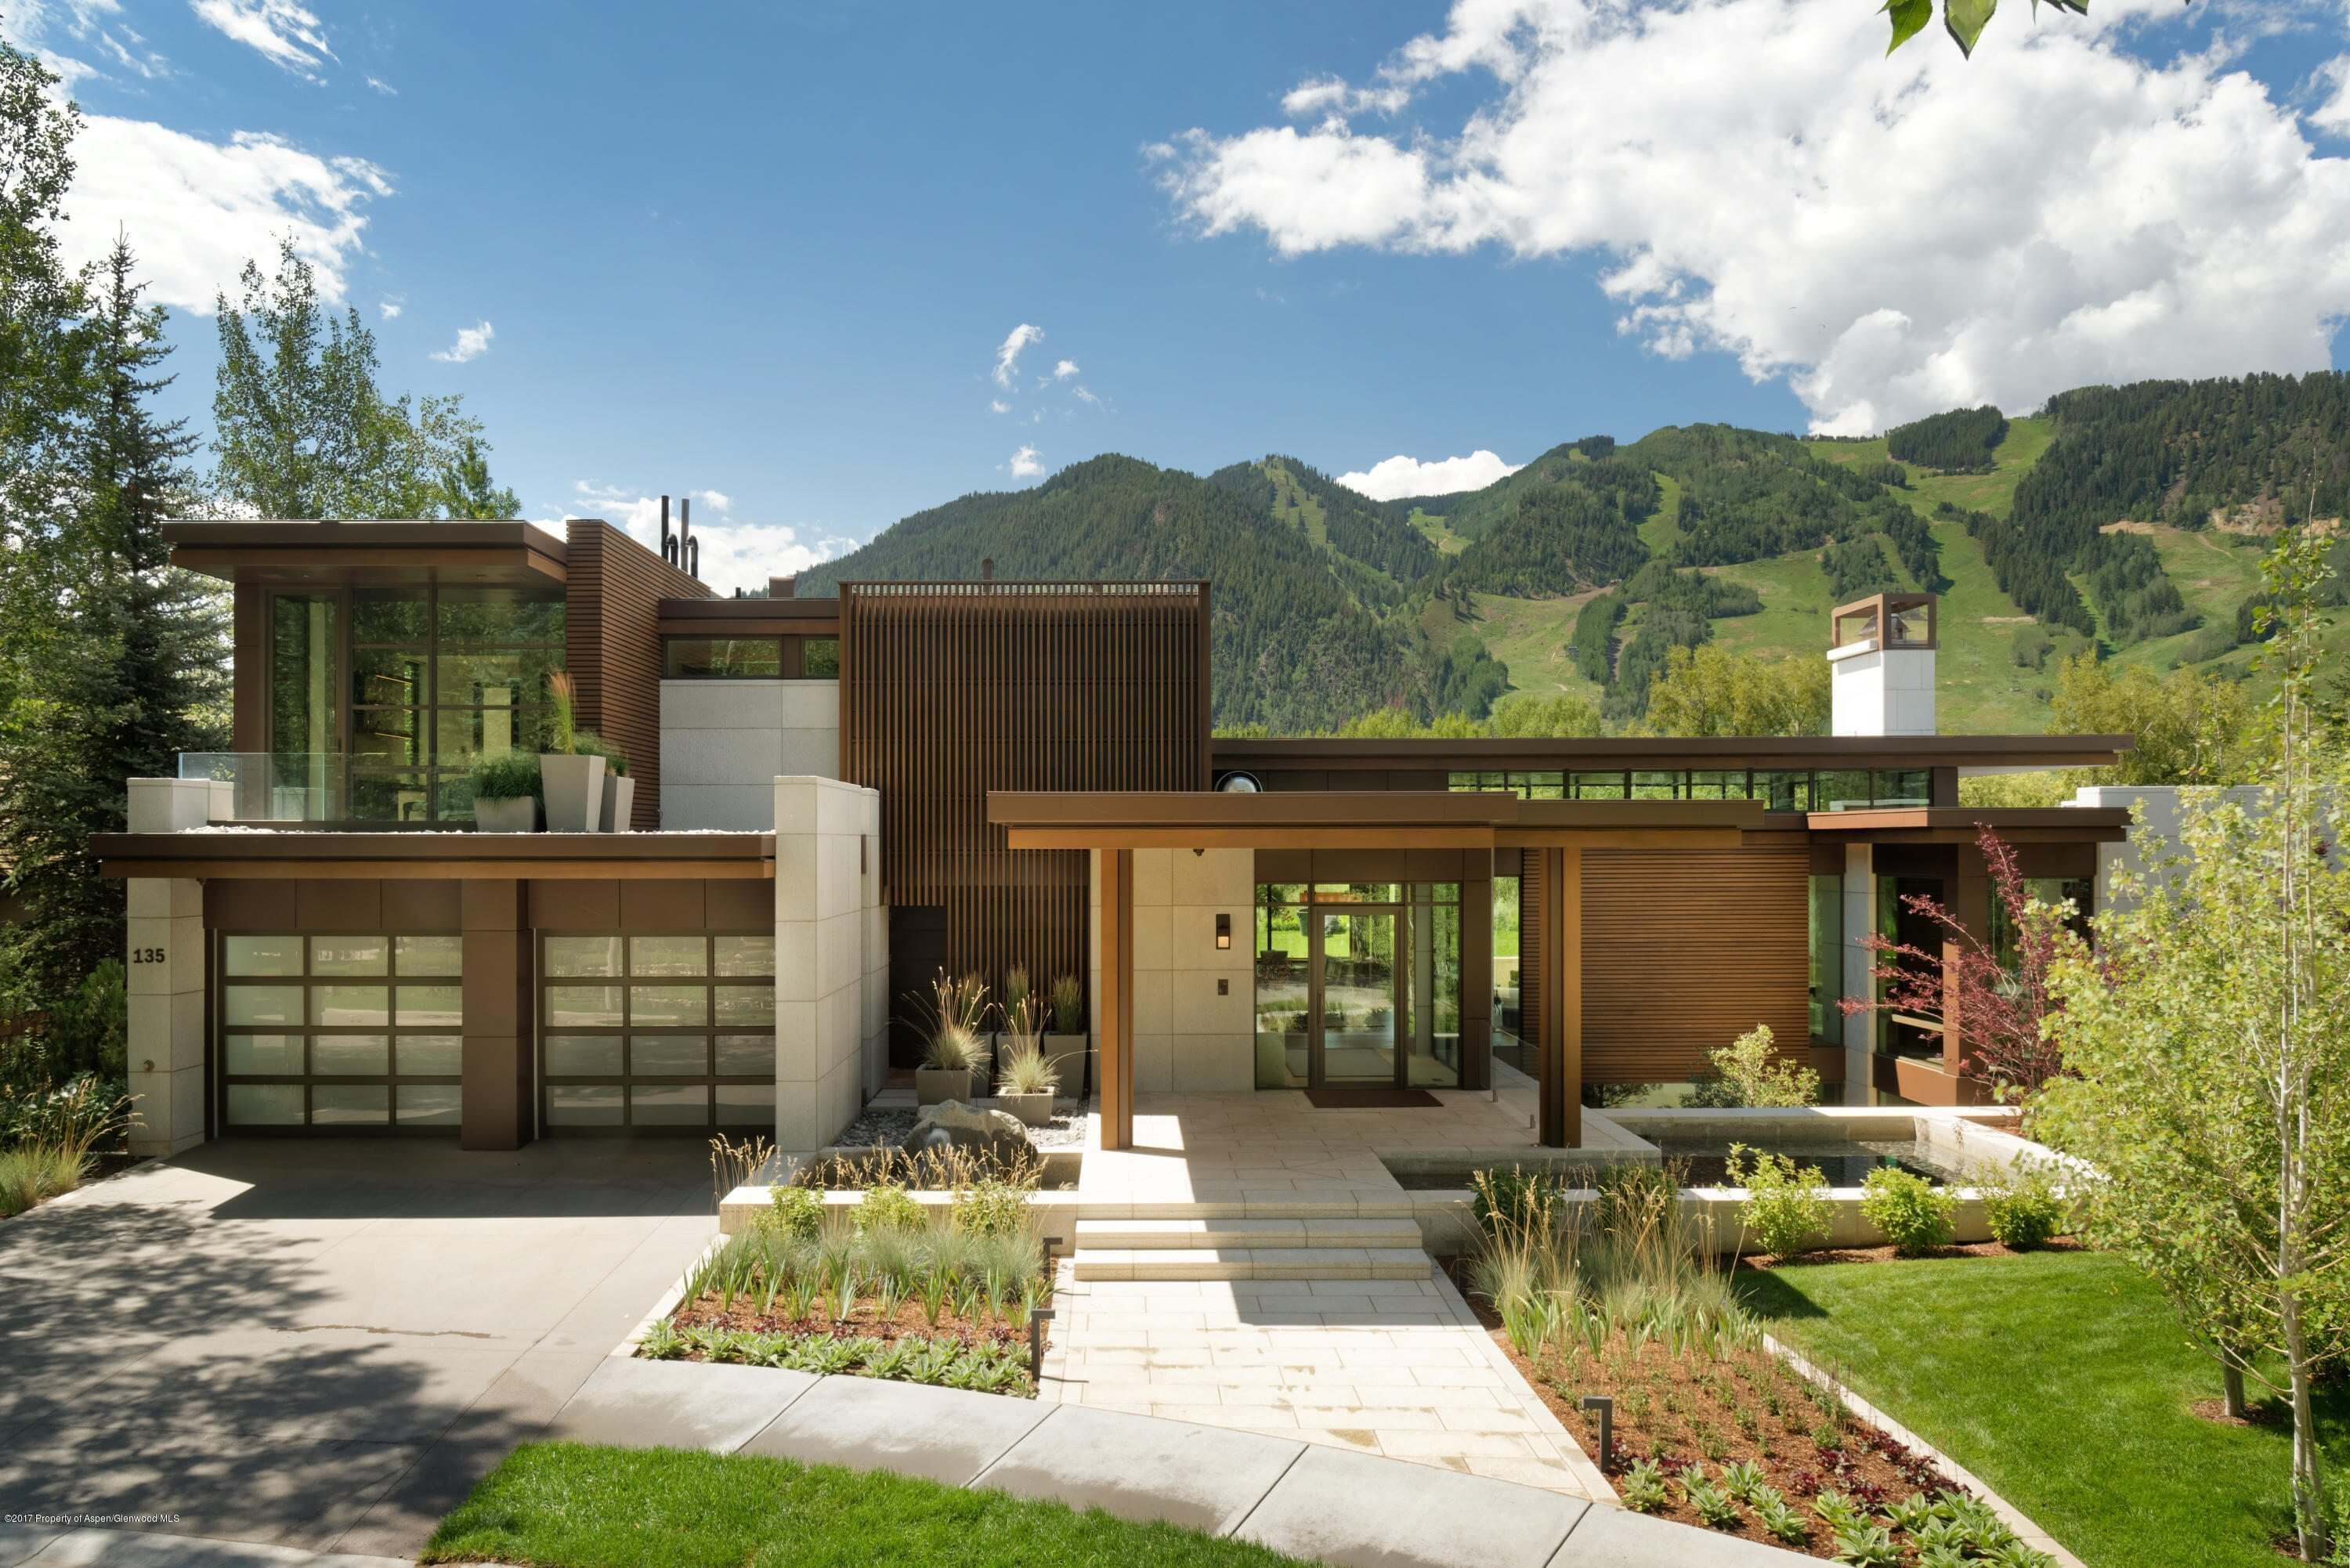 New Contemporary Aspen CO Home for Sale at 135 Miners Trail Closes at $21.5M/$2,621 Sq Ft Image